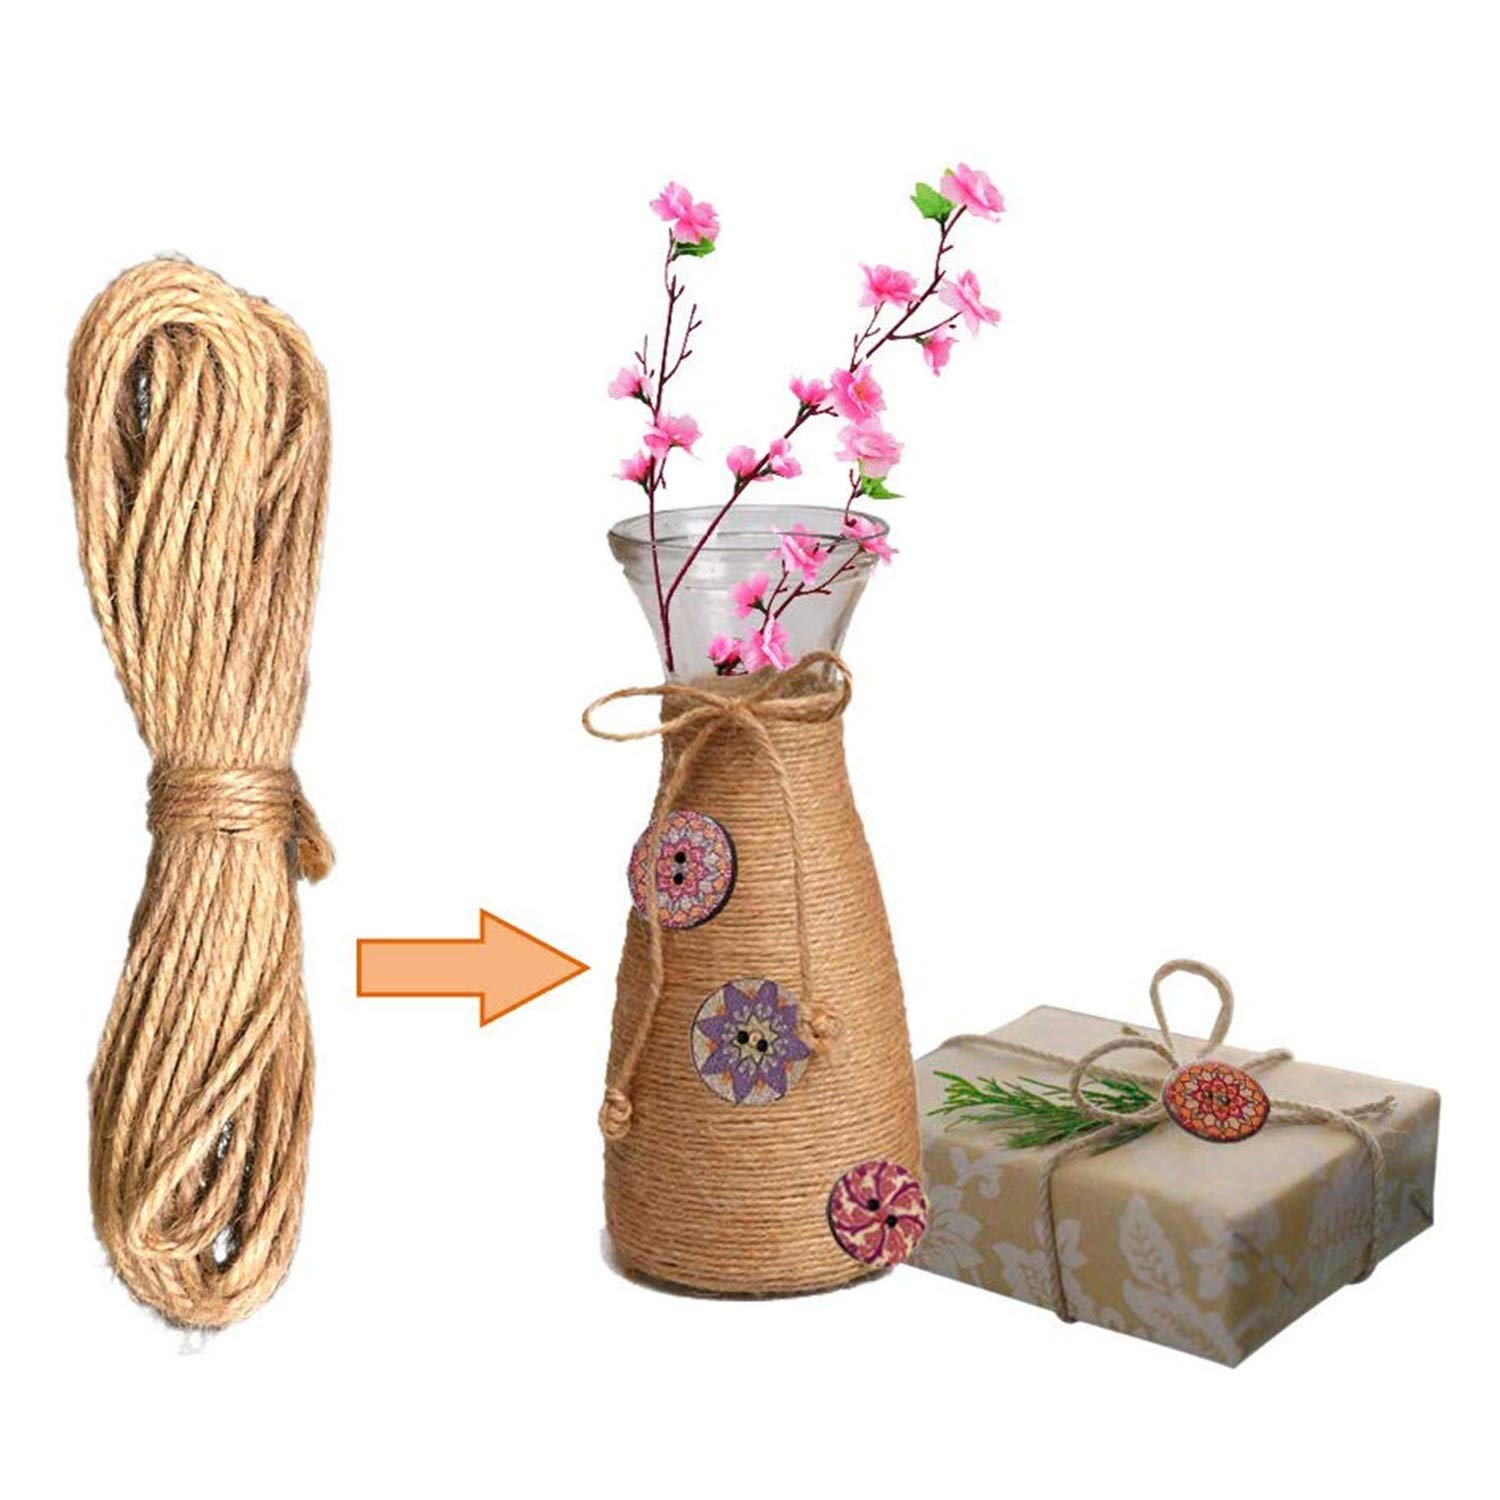 500 Pieces Wood Buttons, 2 Holes Round Flower and Guitar Wooden Buttons Vintage Buttons for DIY Sewing Craft Decorations, with 65.6 Feet Natural Jute Twine